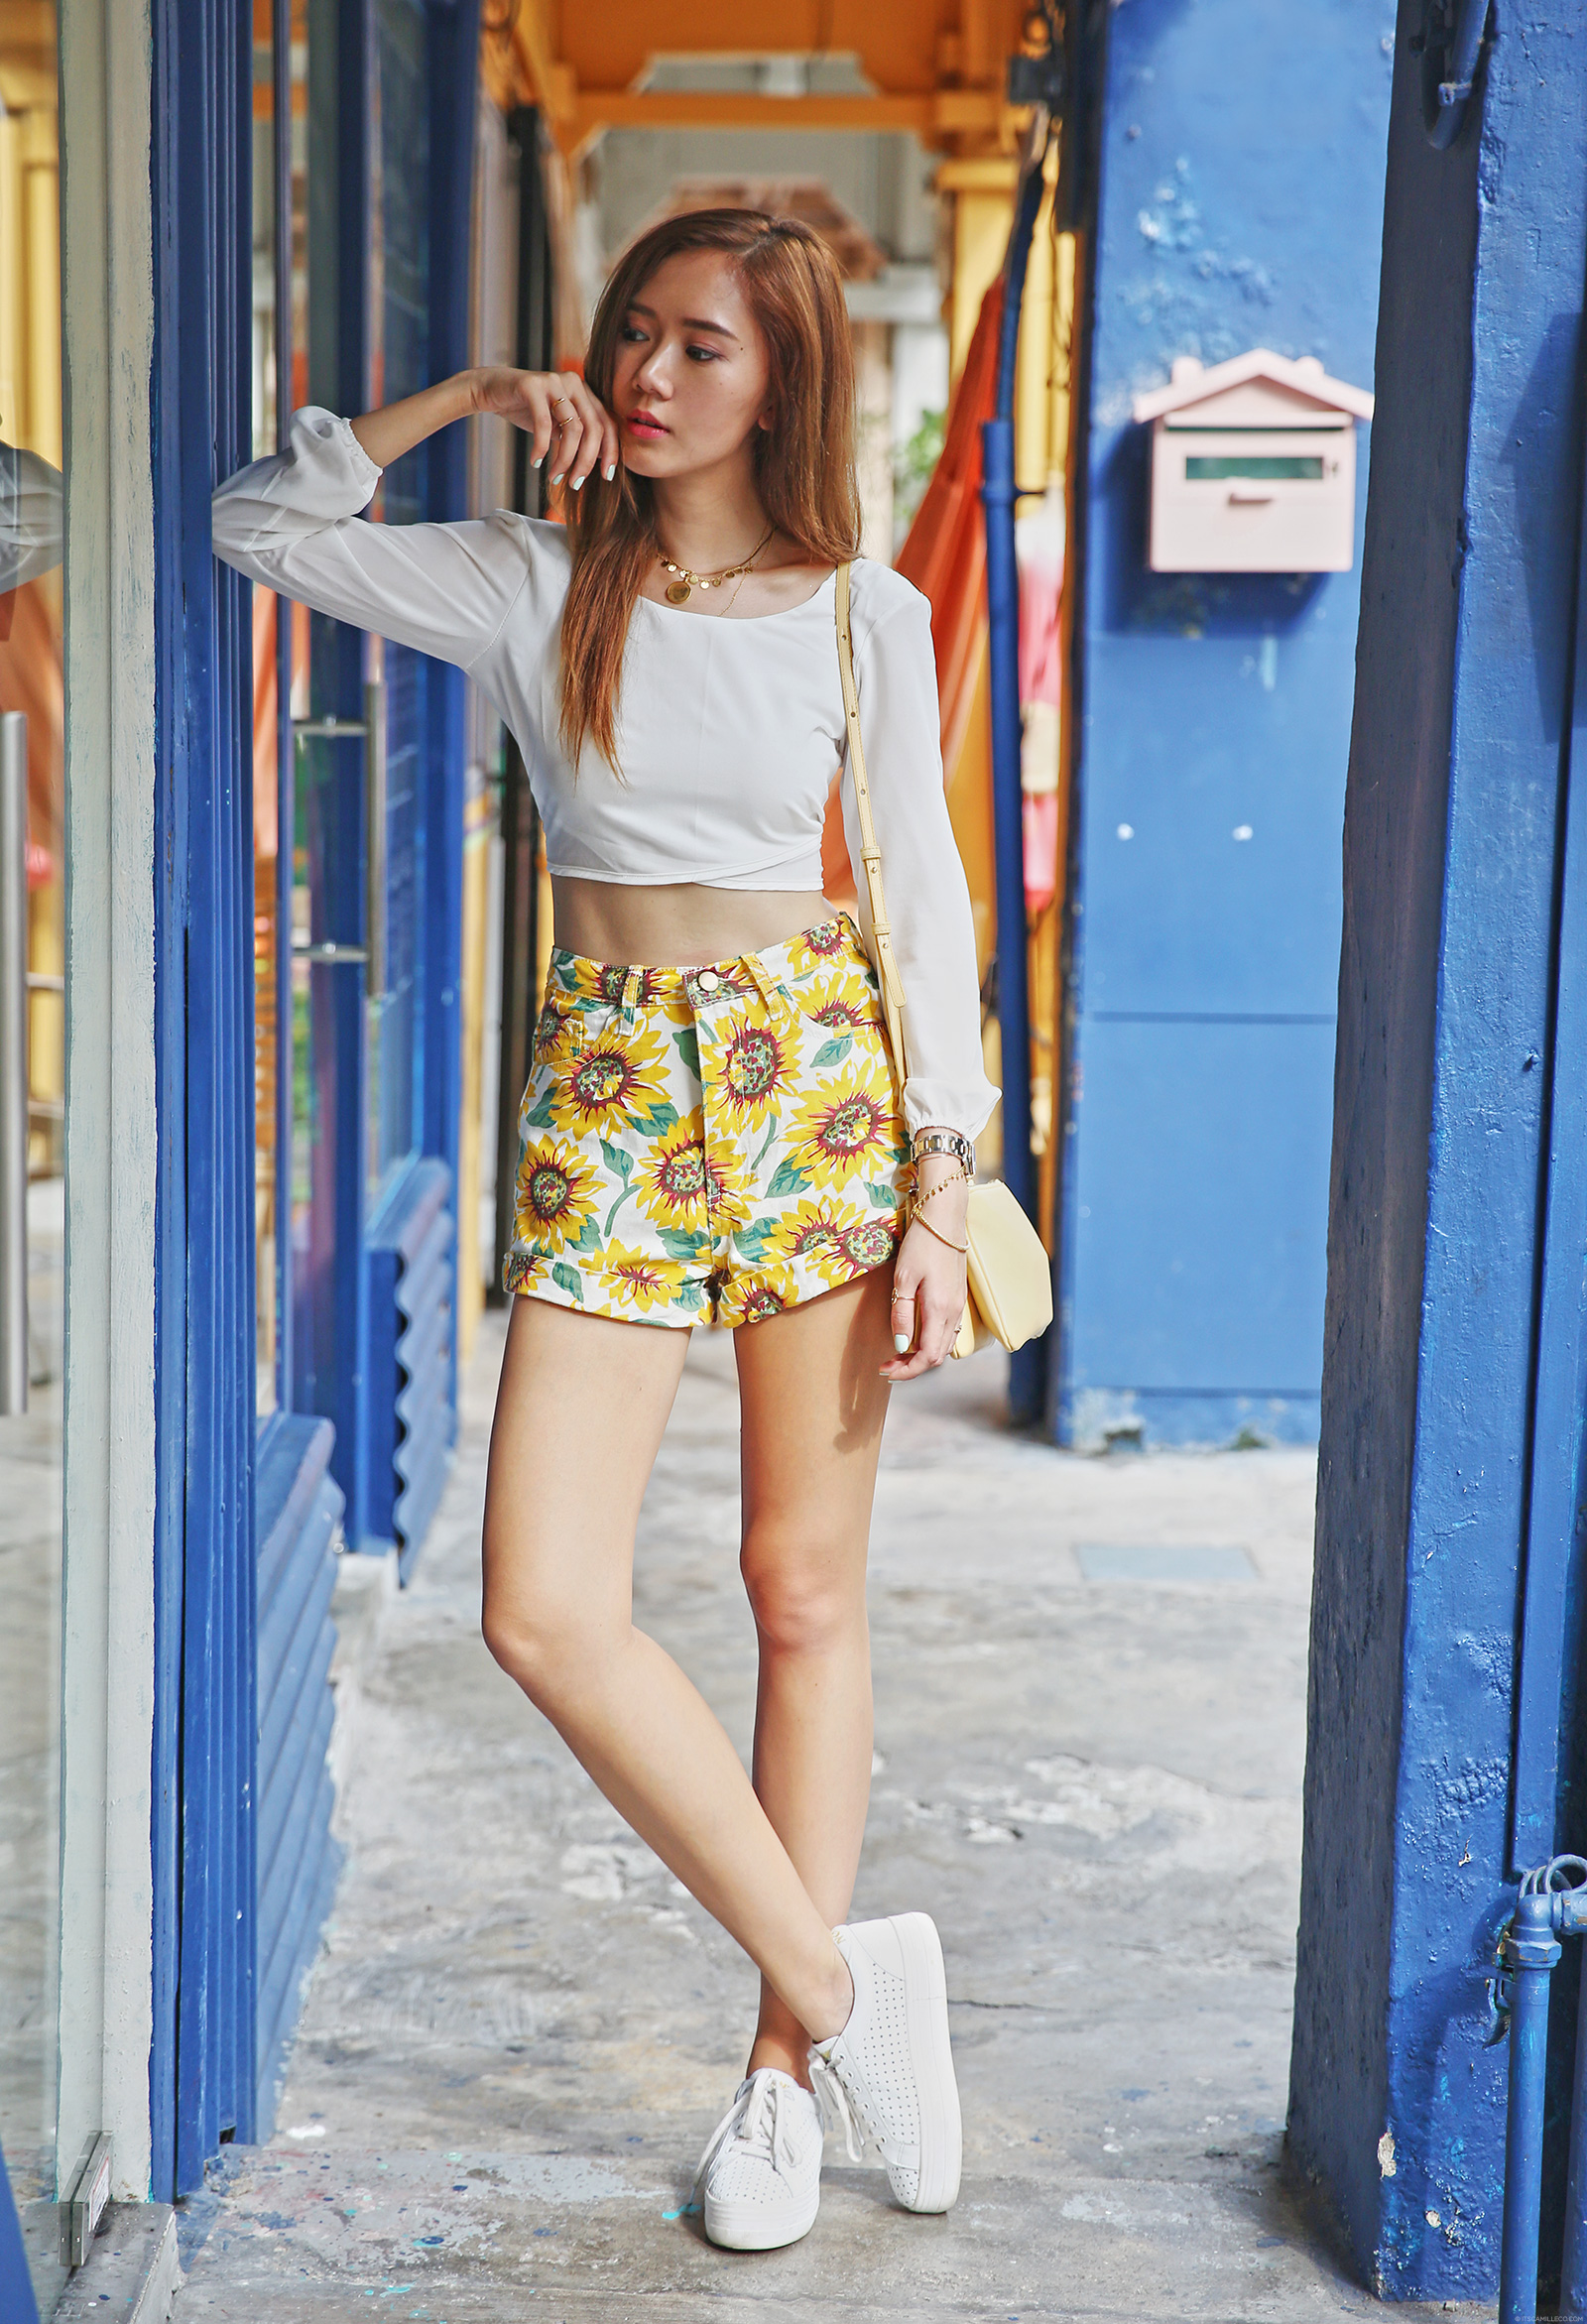 Style Moi cropped top, Shein shorts, No Name sneakers, Ceéline bag at Haji Lane - www.itscamilleco.com